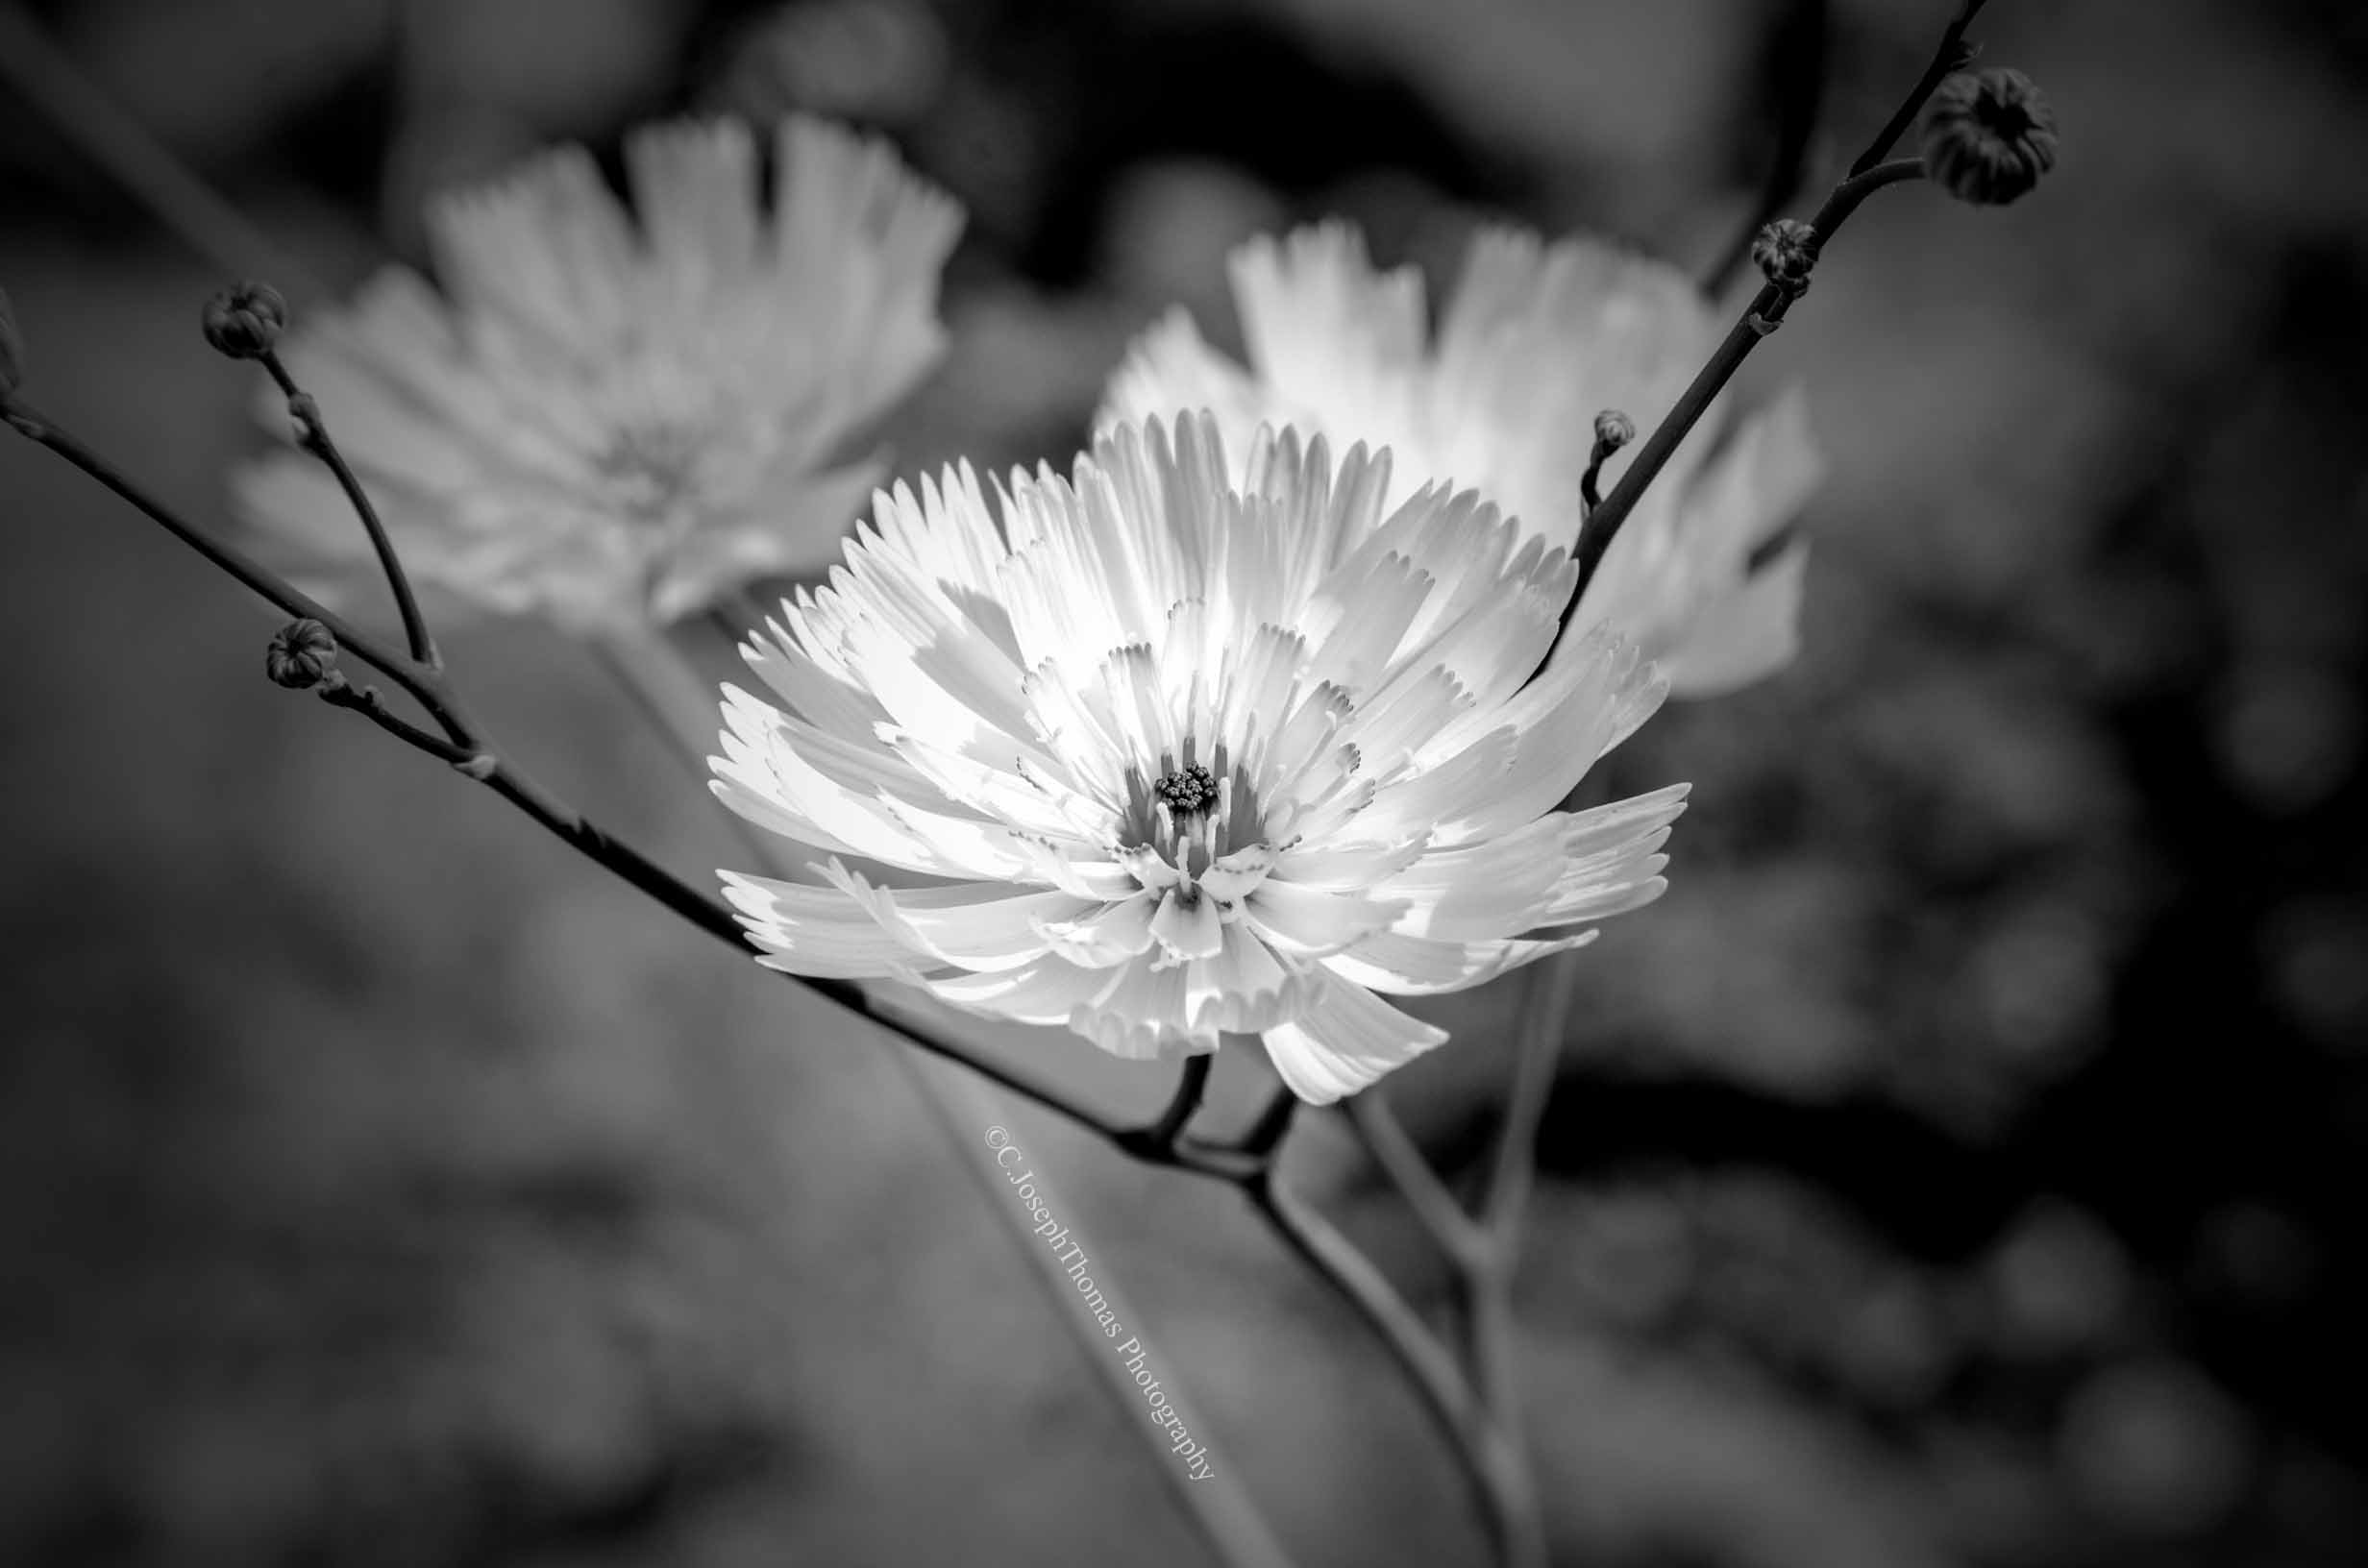 Black and White Photographs From My Travels - Feels ...